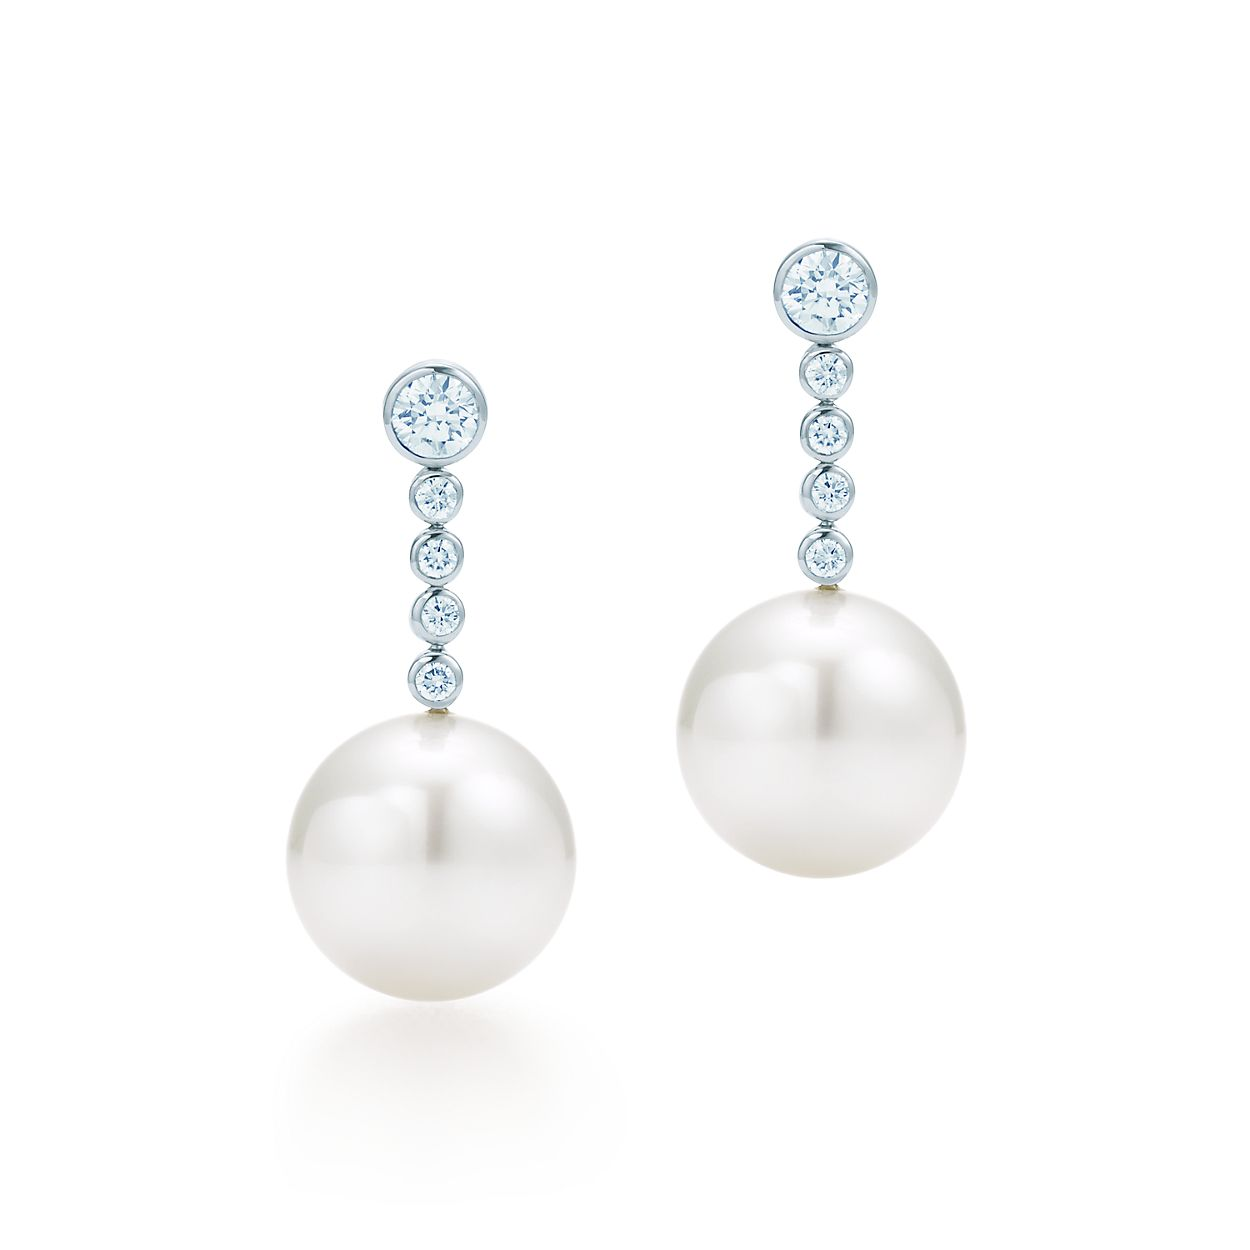 Tiffany Jazz South Sea Pearl Earrings